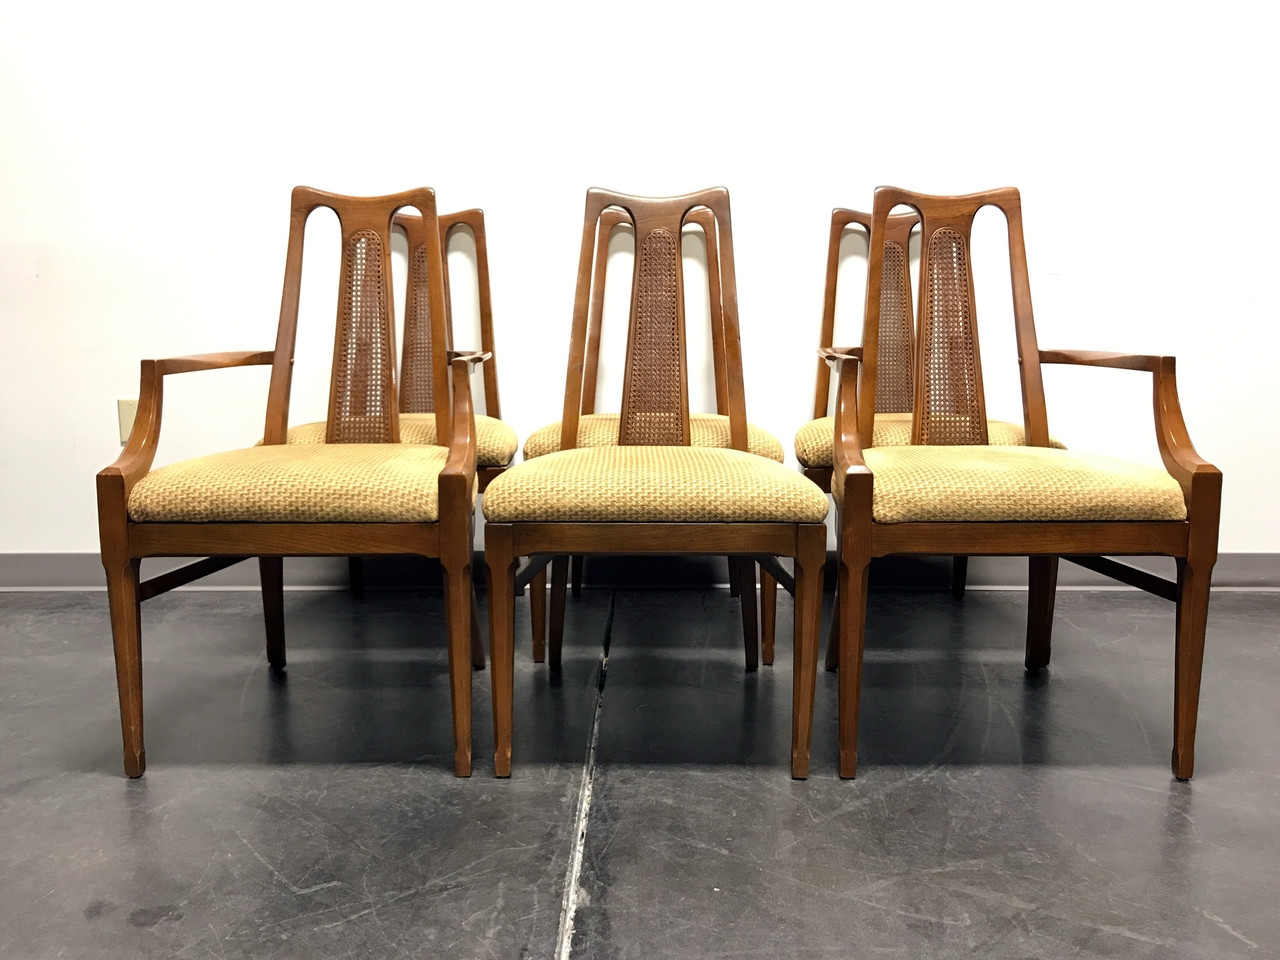 White Furniture Co Mid Century Modern Walnut Cane Dining Chairs Set Of 6 Boyd S Fine Furnishings